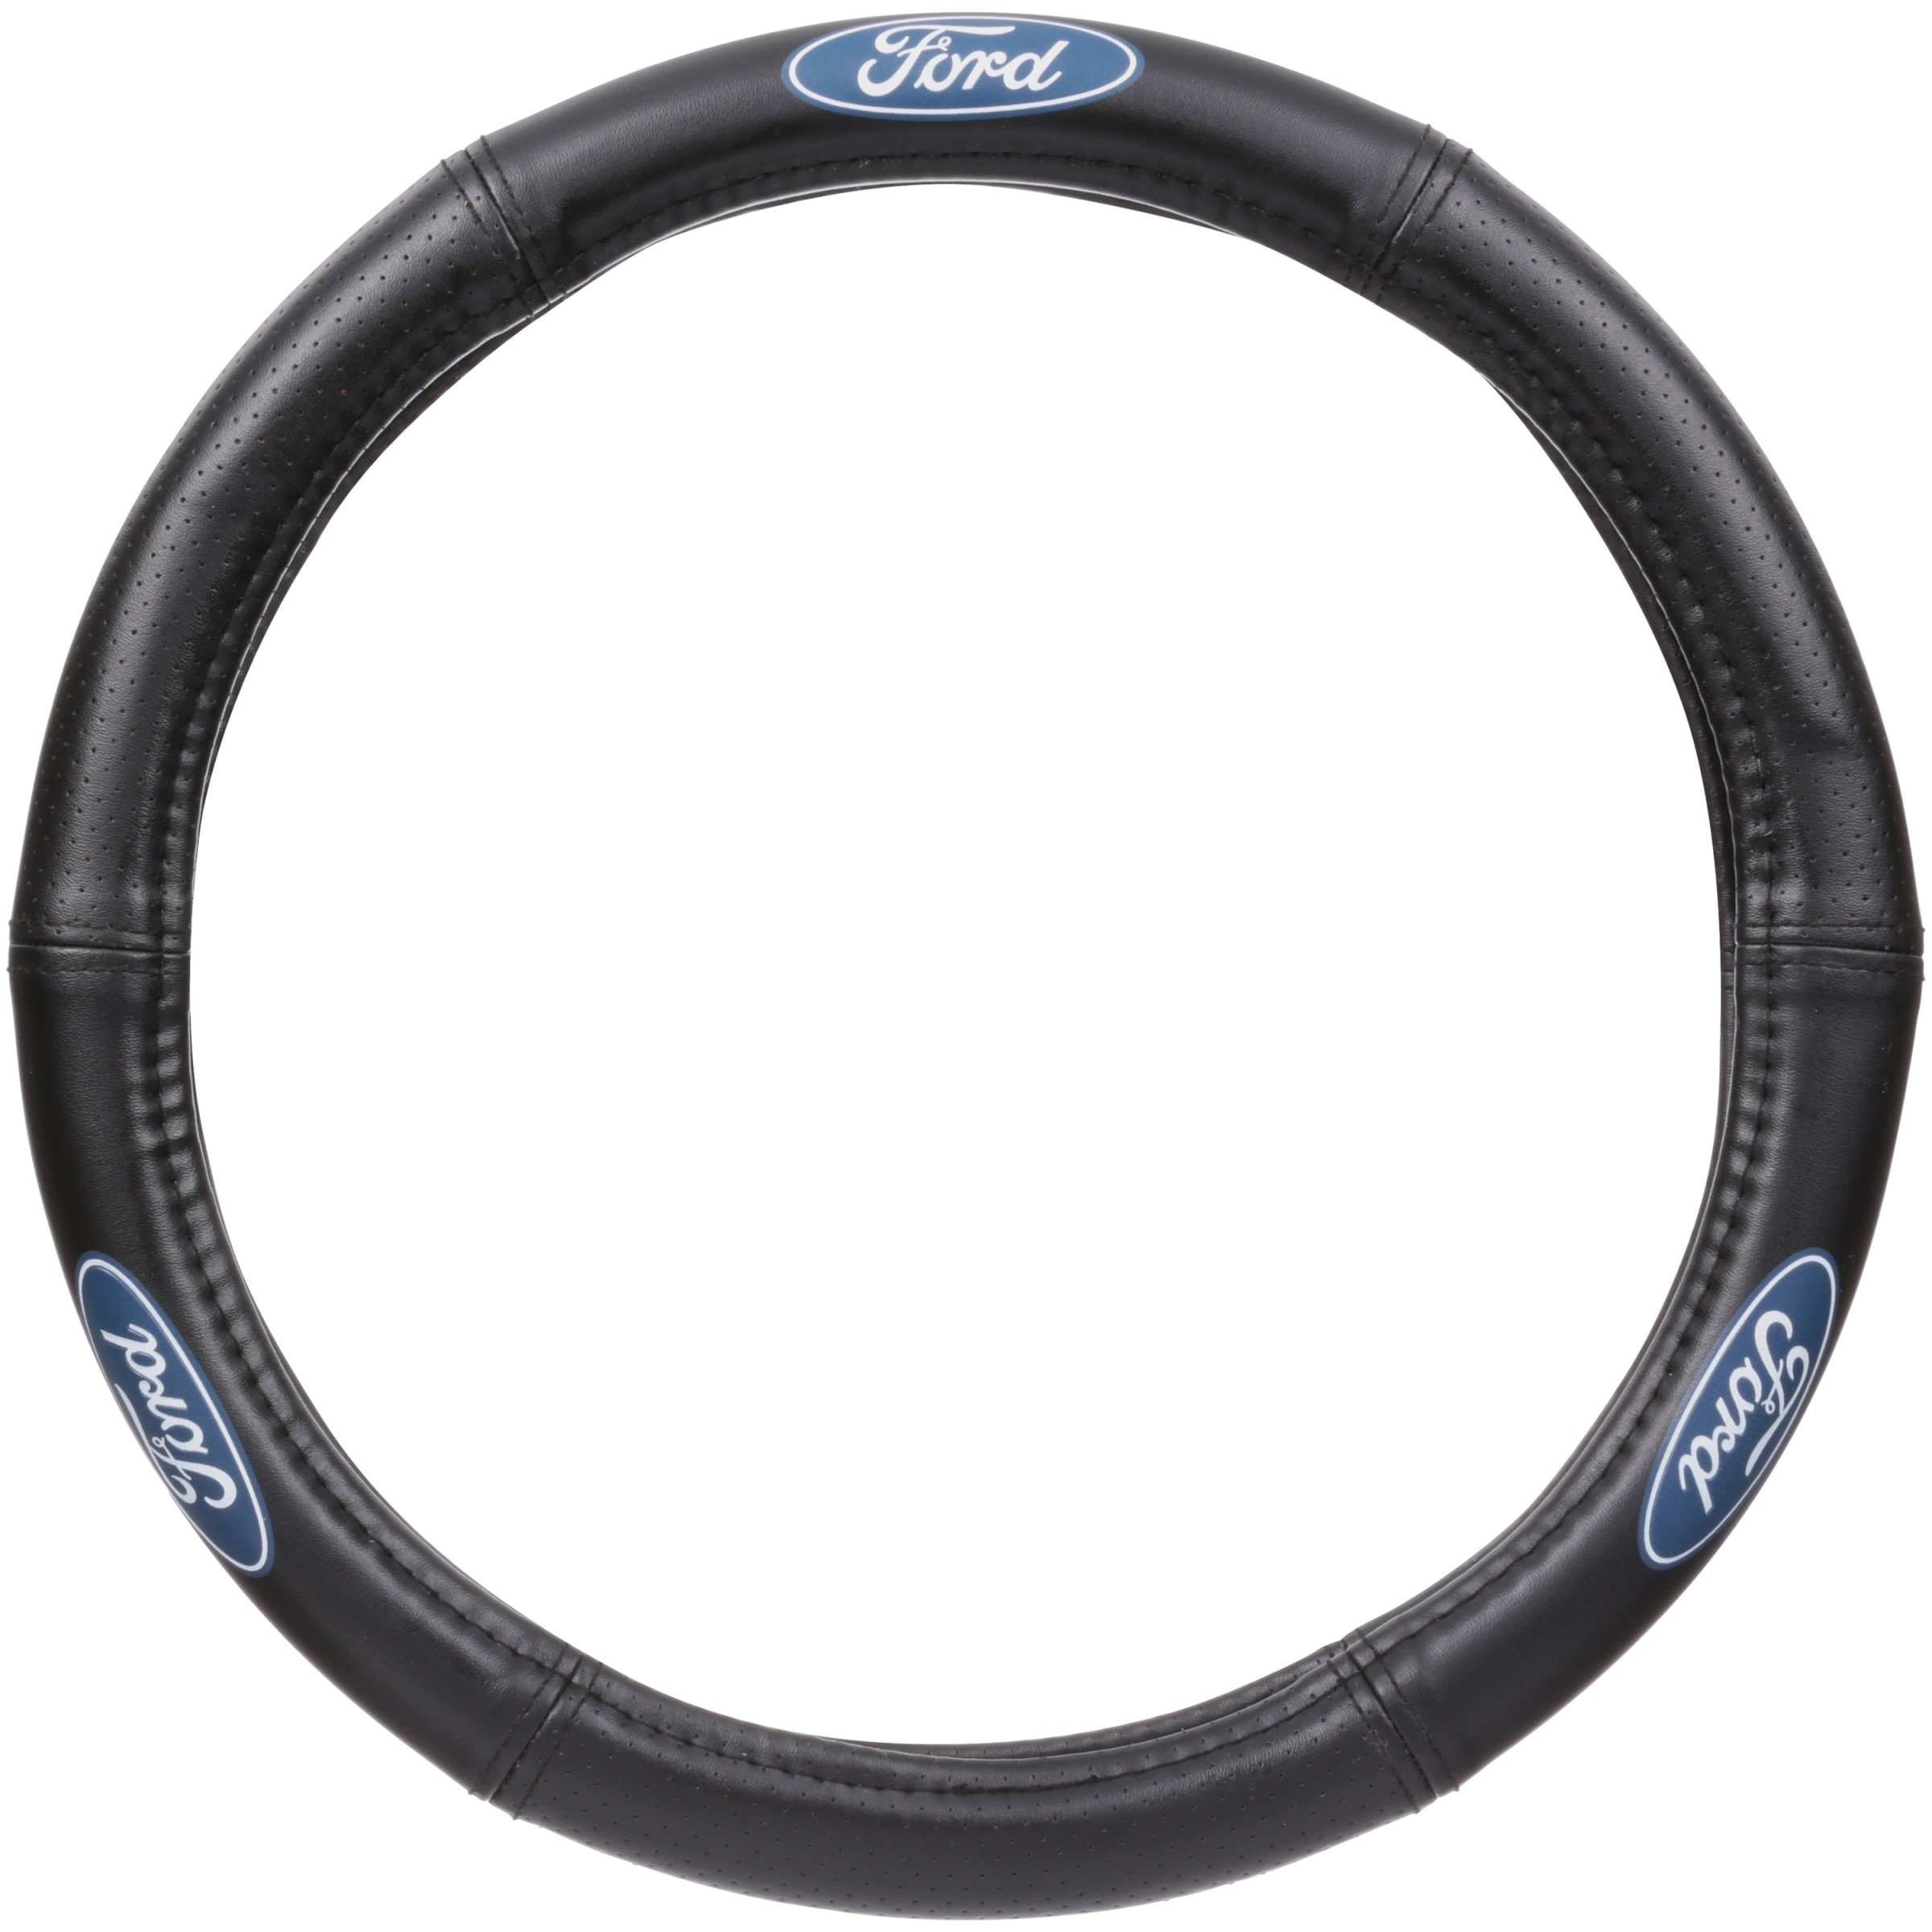 Ford Elite Speed Grip Steering Wheel Cover­™